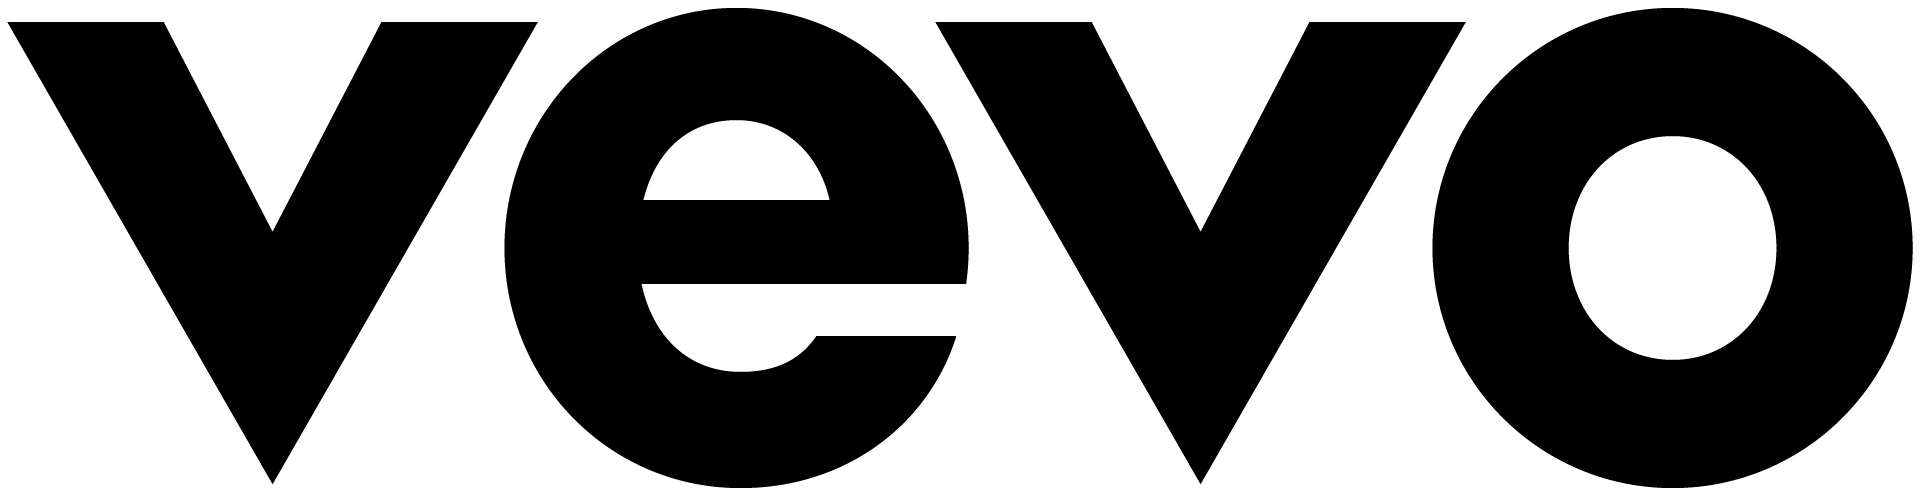 vevo_wordmark_black.png